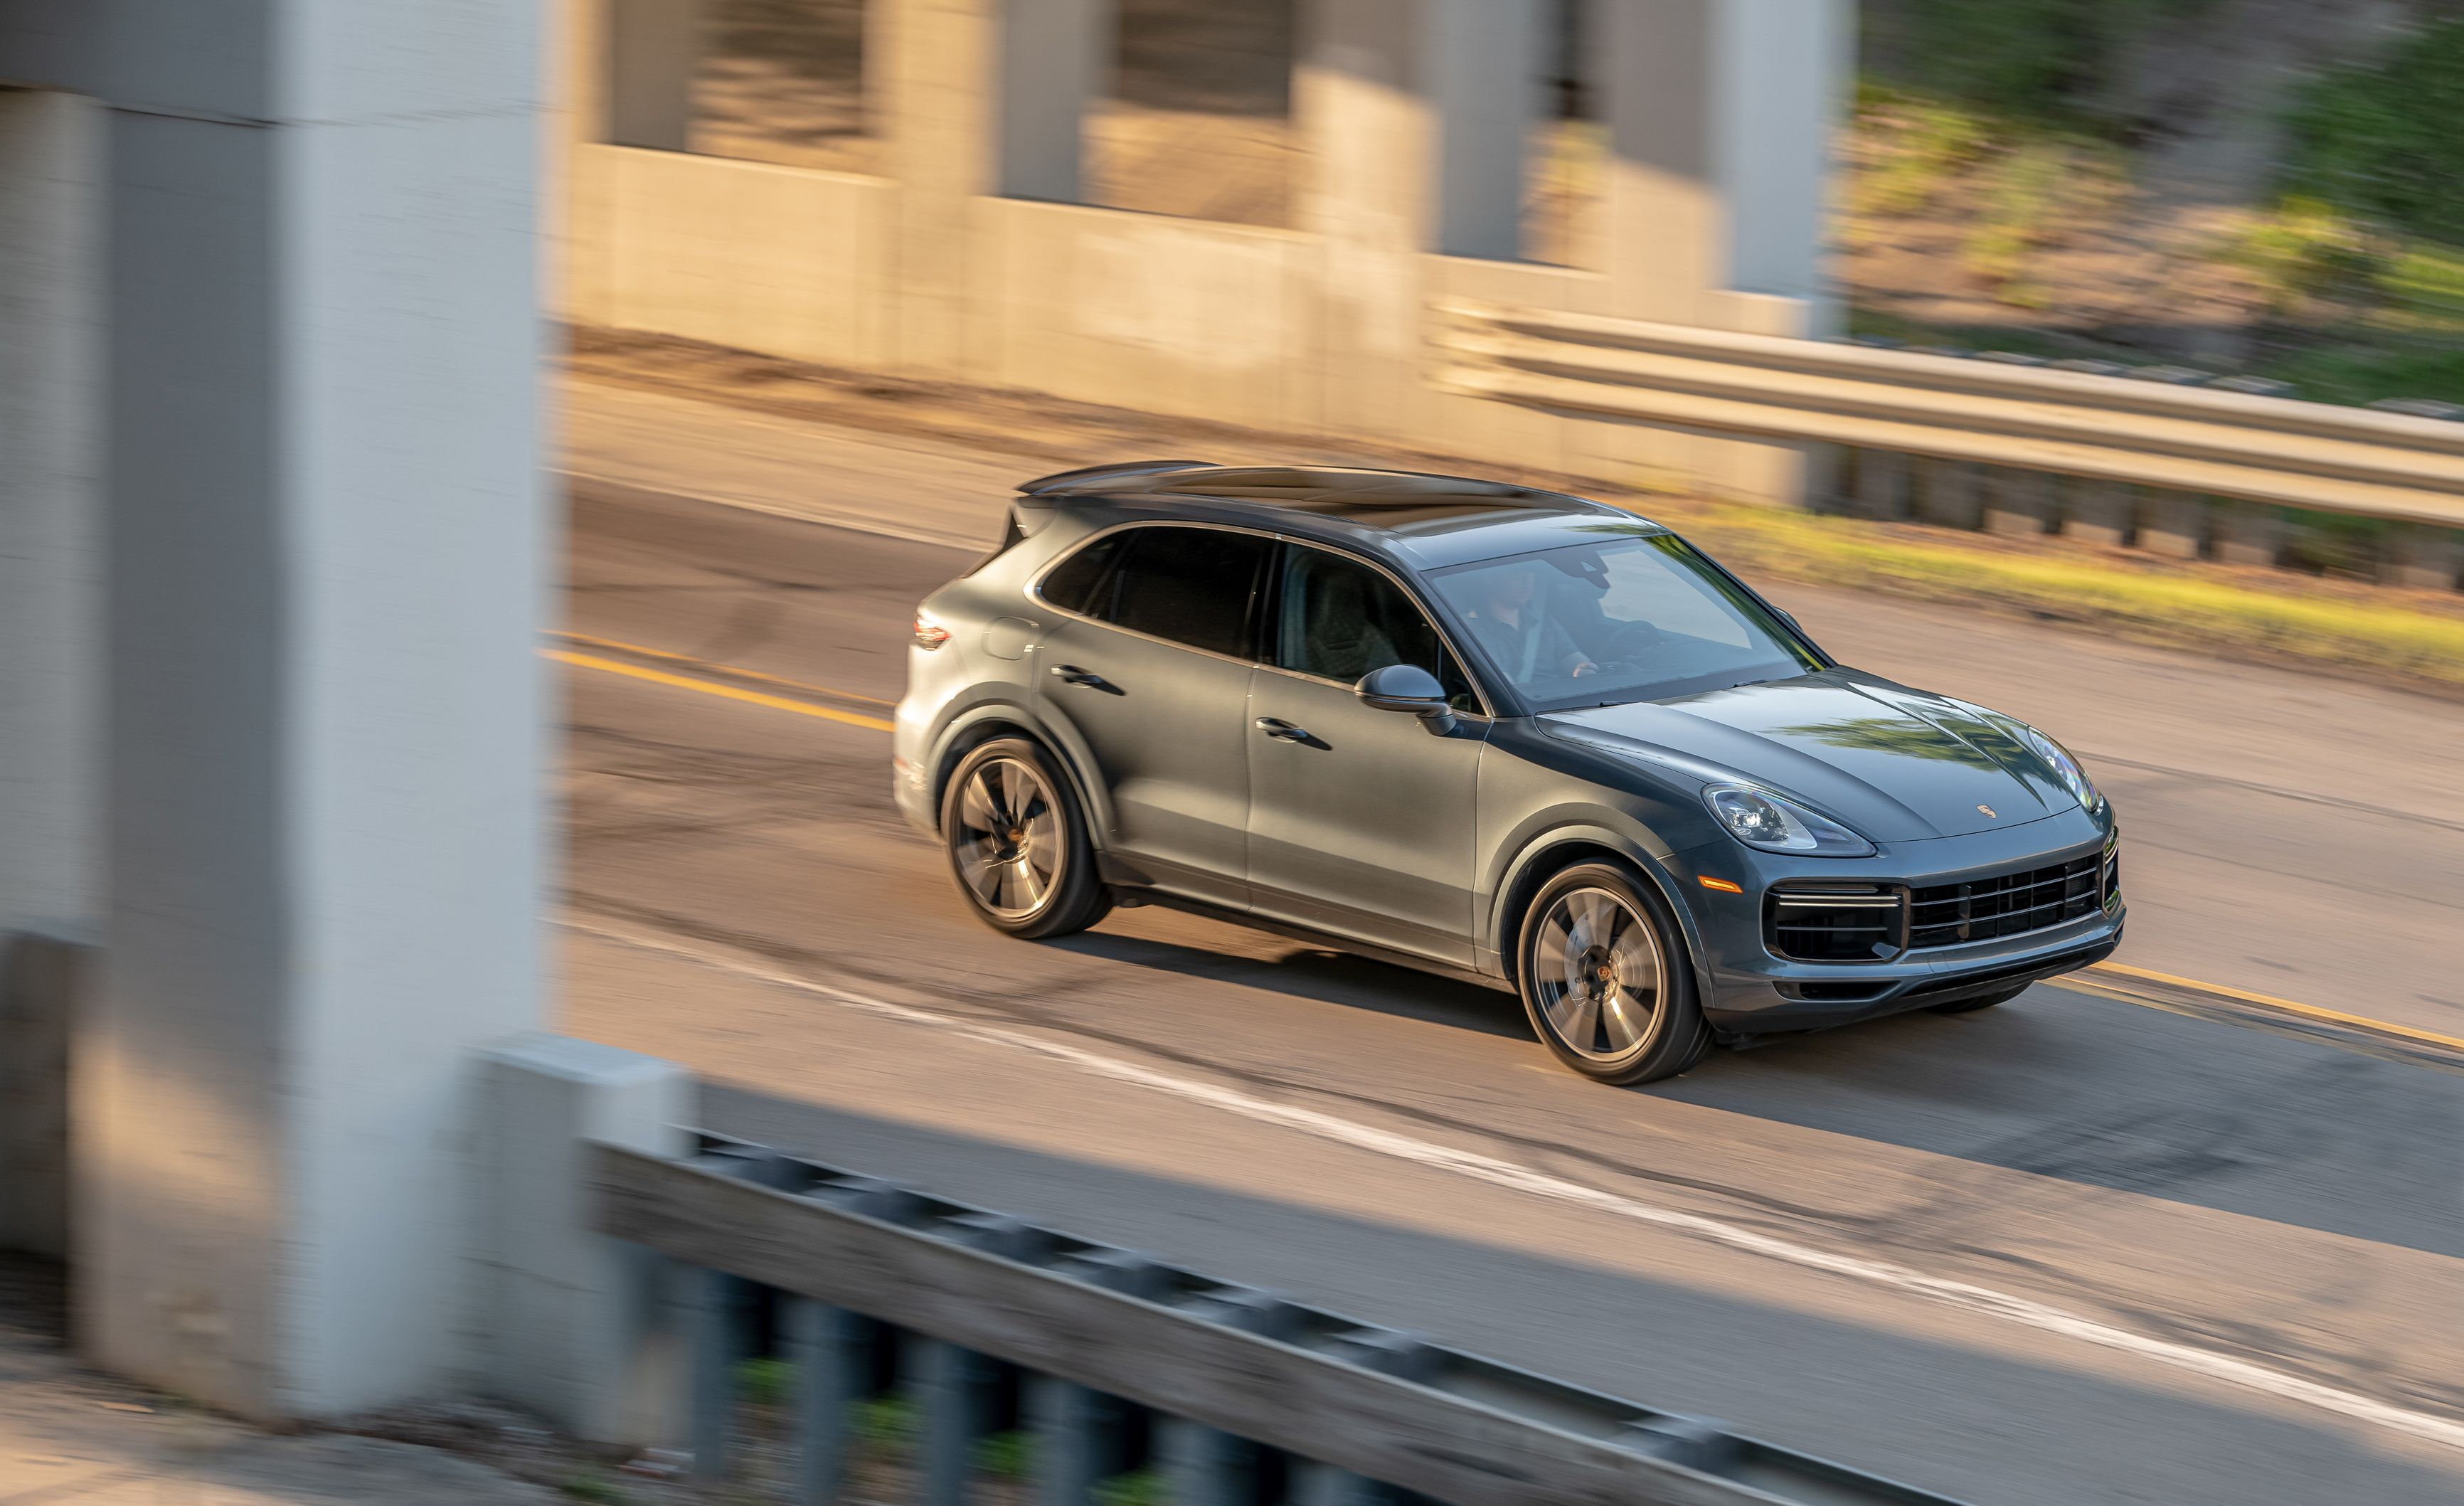 2019 Porsche Cayenne Turbo Is The Ultimate Porsche Suv For Now